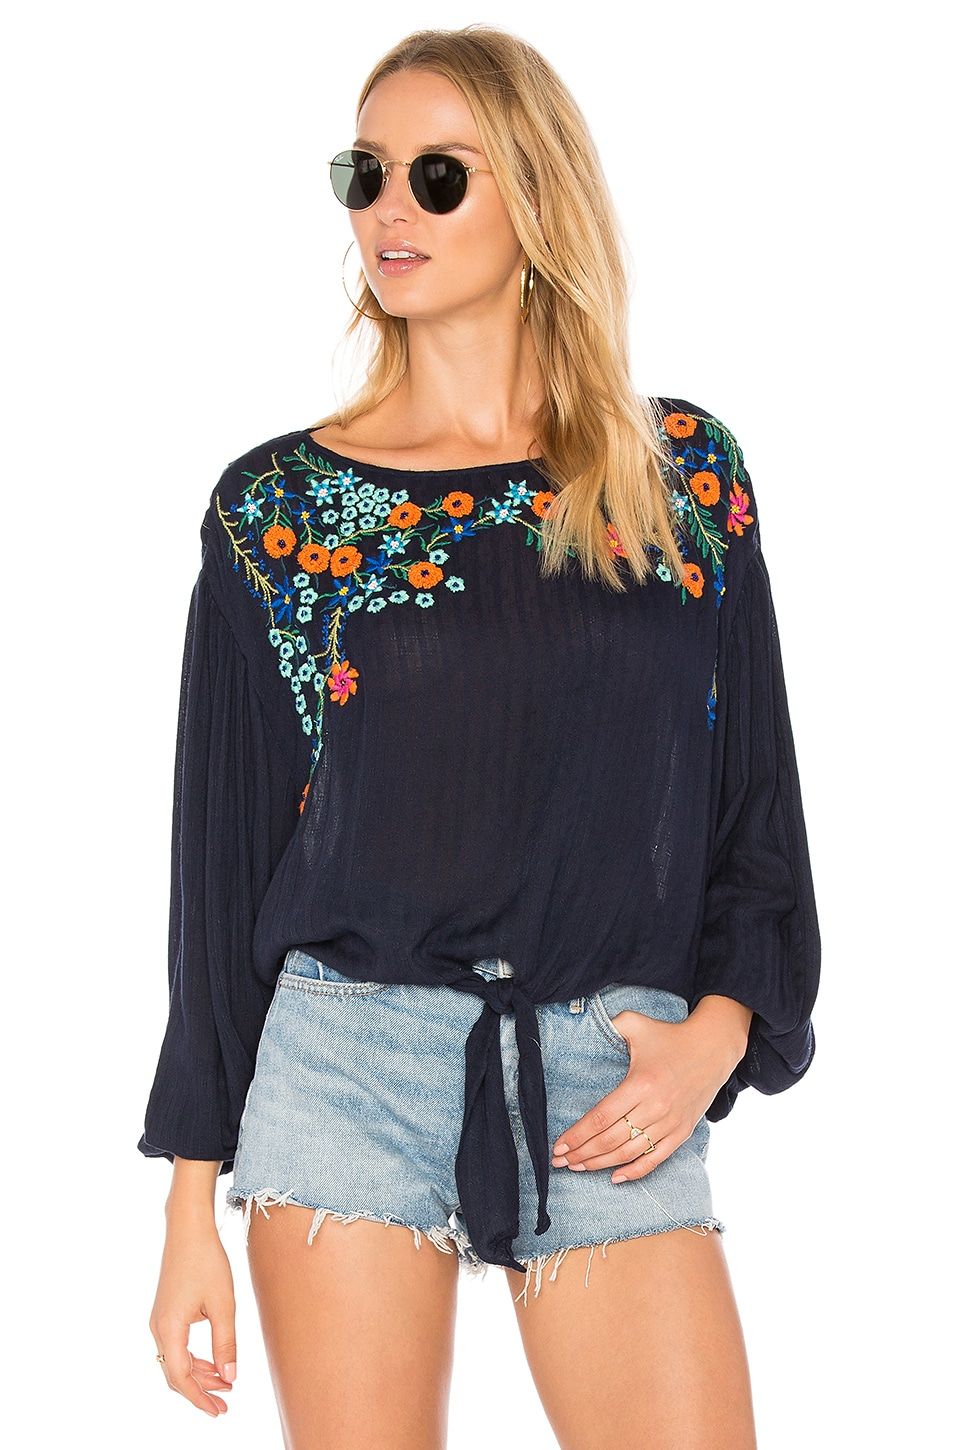 Up And Away Embroidered Top by Free People